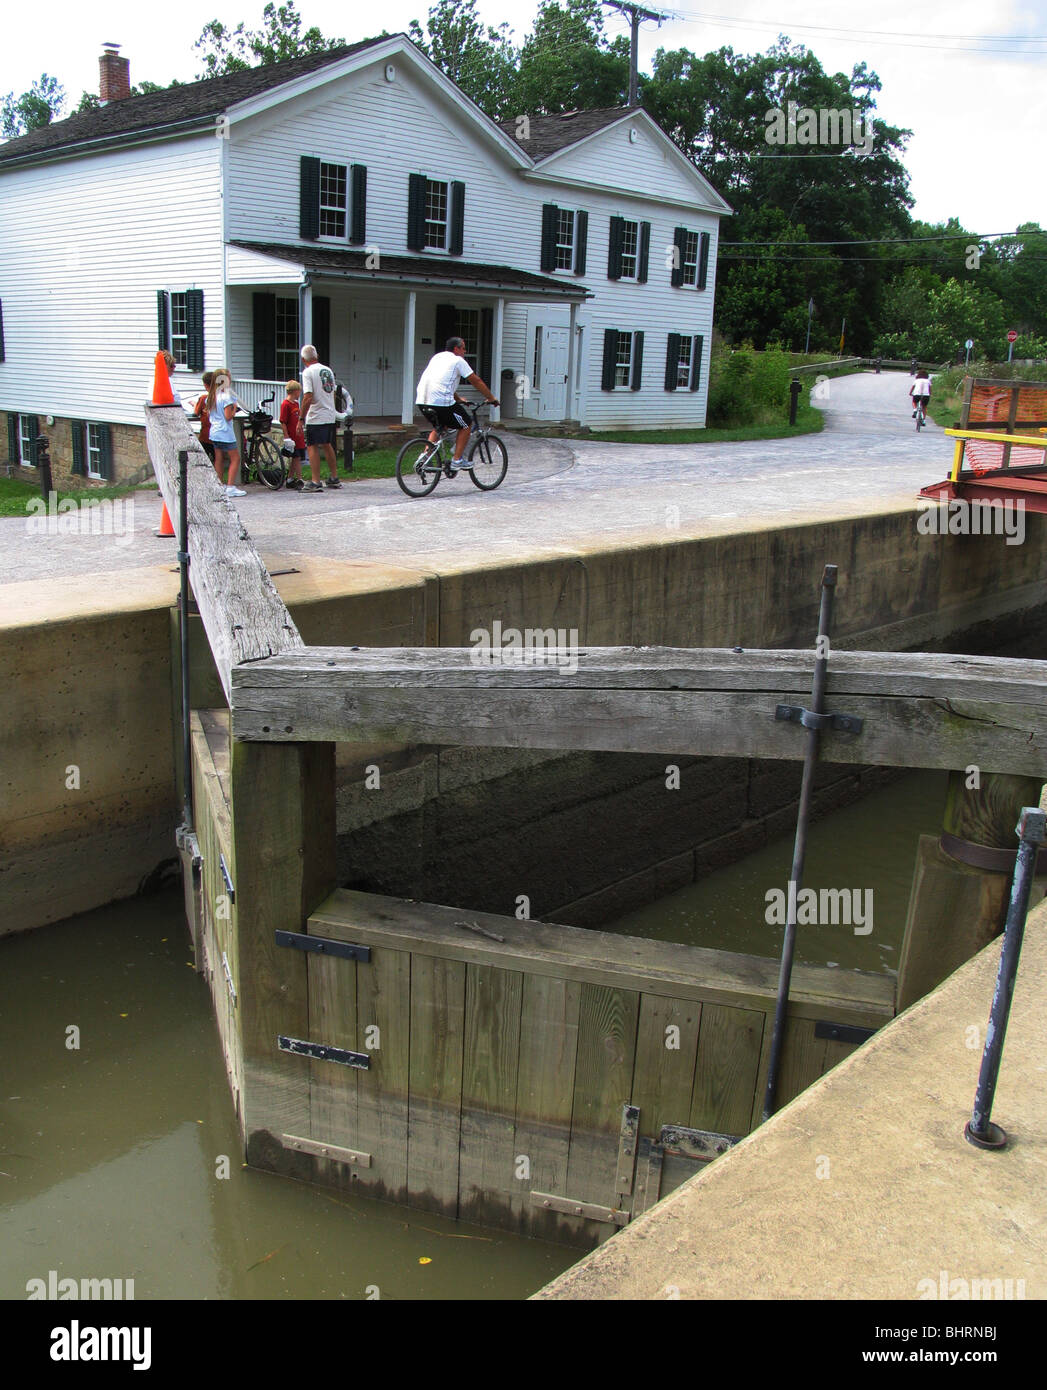 Canal lock Ohio and Erie Canal Towpath Trail bikers Cuyahoga Valley National Park Ohio bike path hike history historic - Stock Image